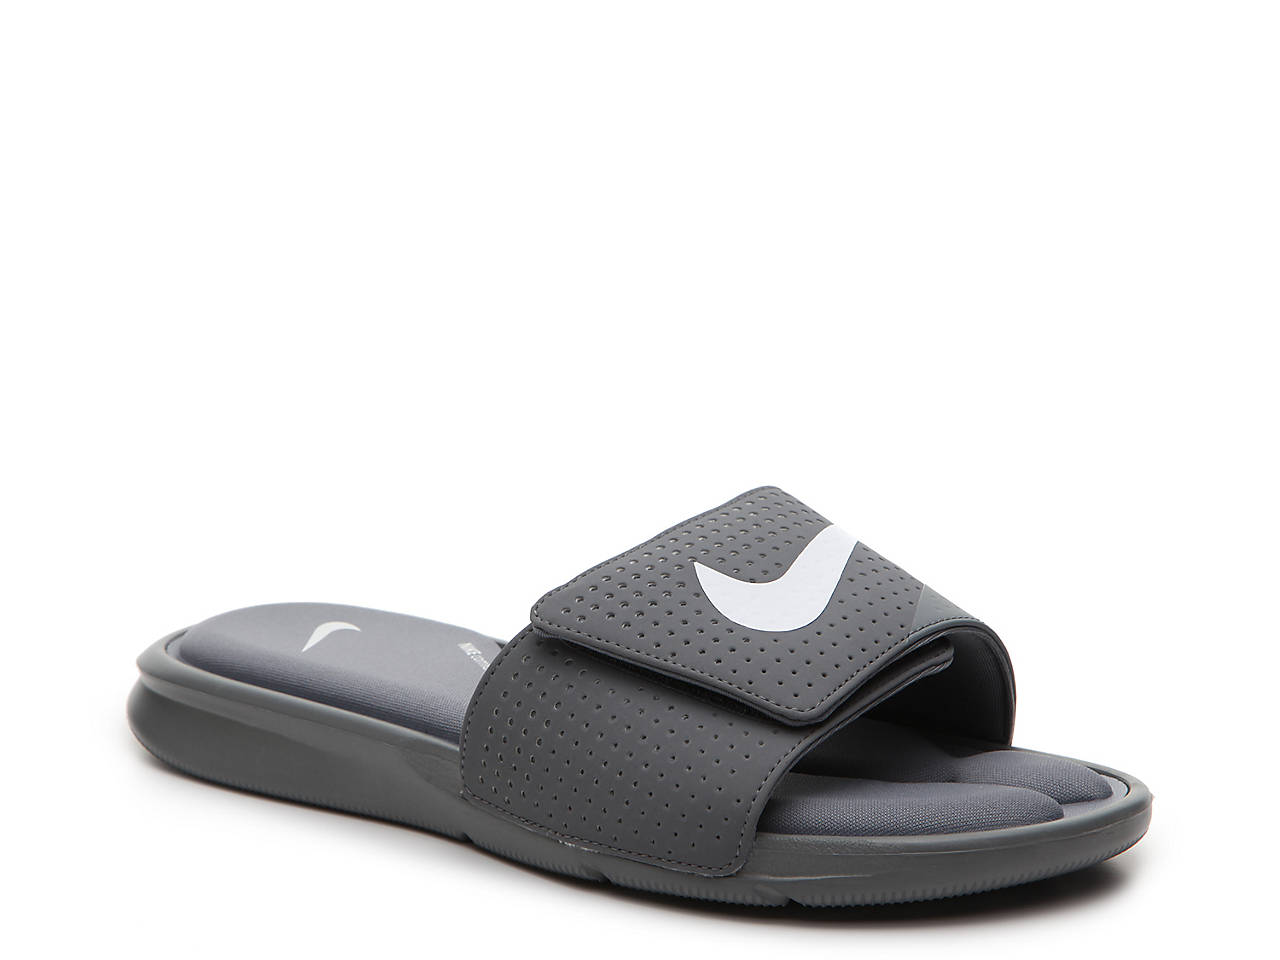 footbed shoes and training athletic pin comforter toe comfort nike